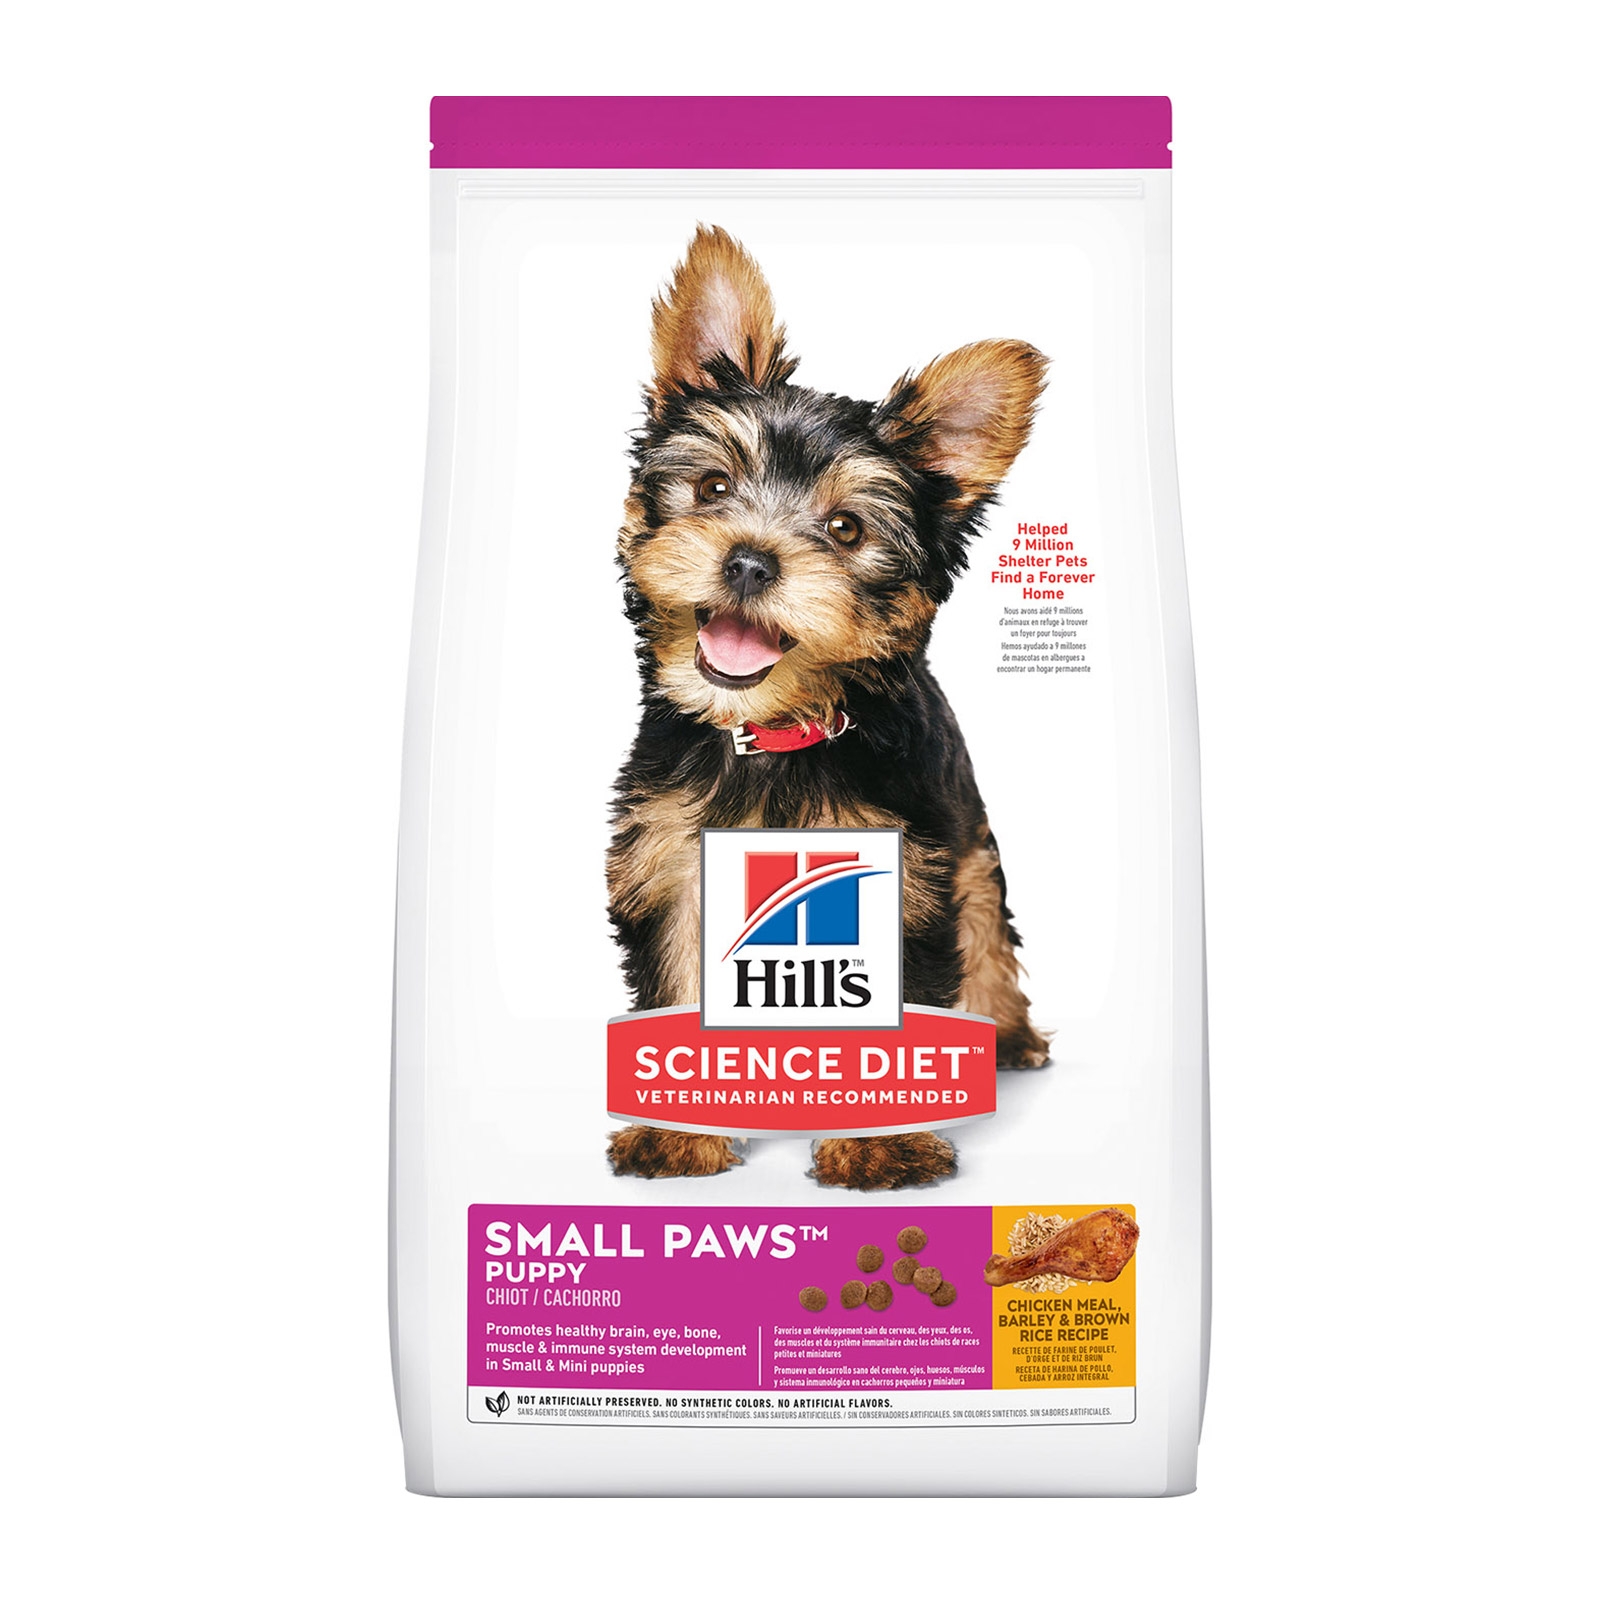 Hill's Science Diet Puppy Small Paws Chicken, Barley & Rice Dry Dog Food